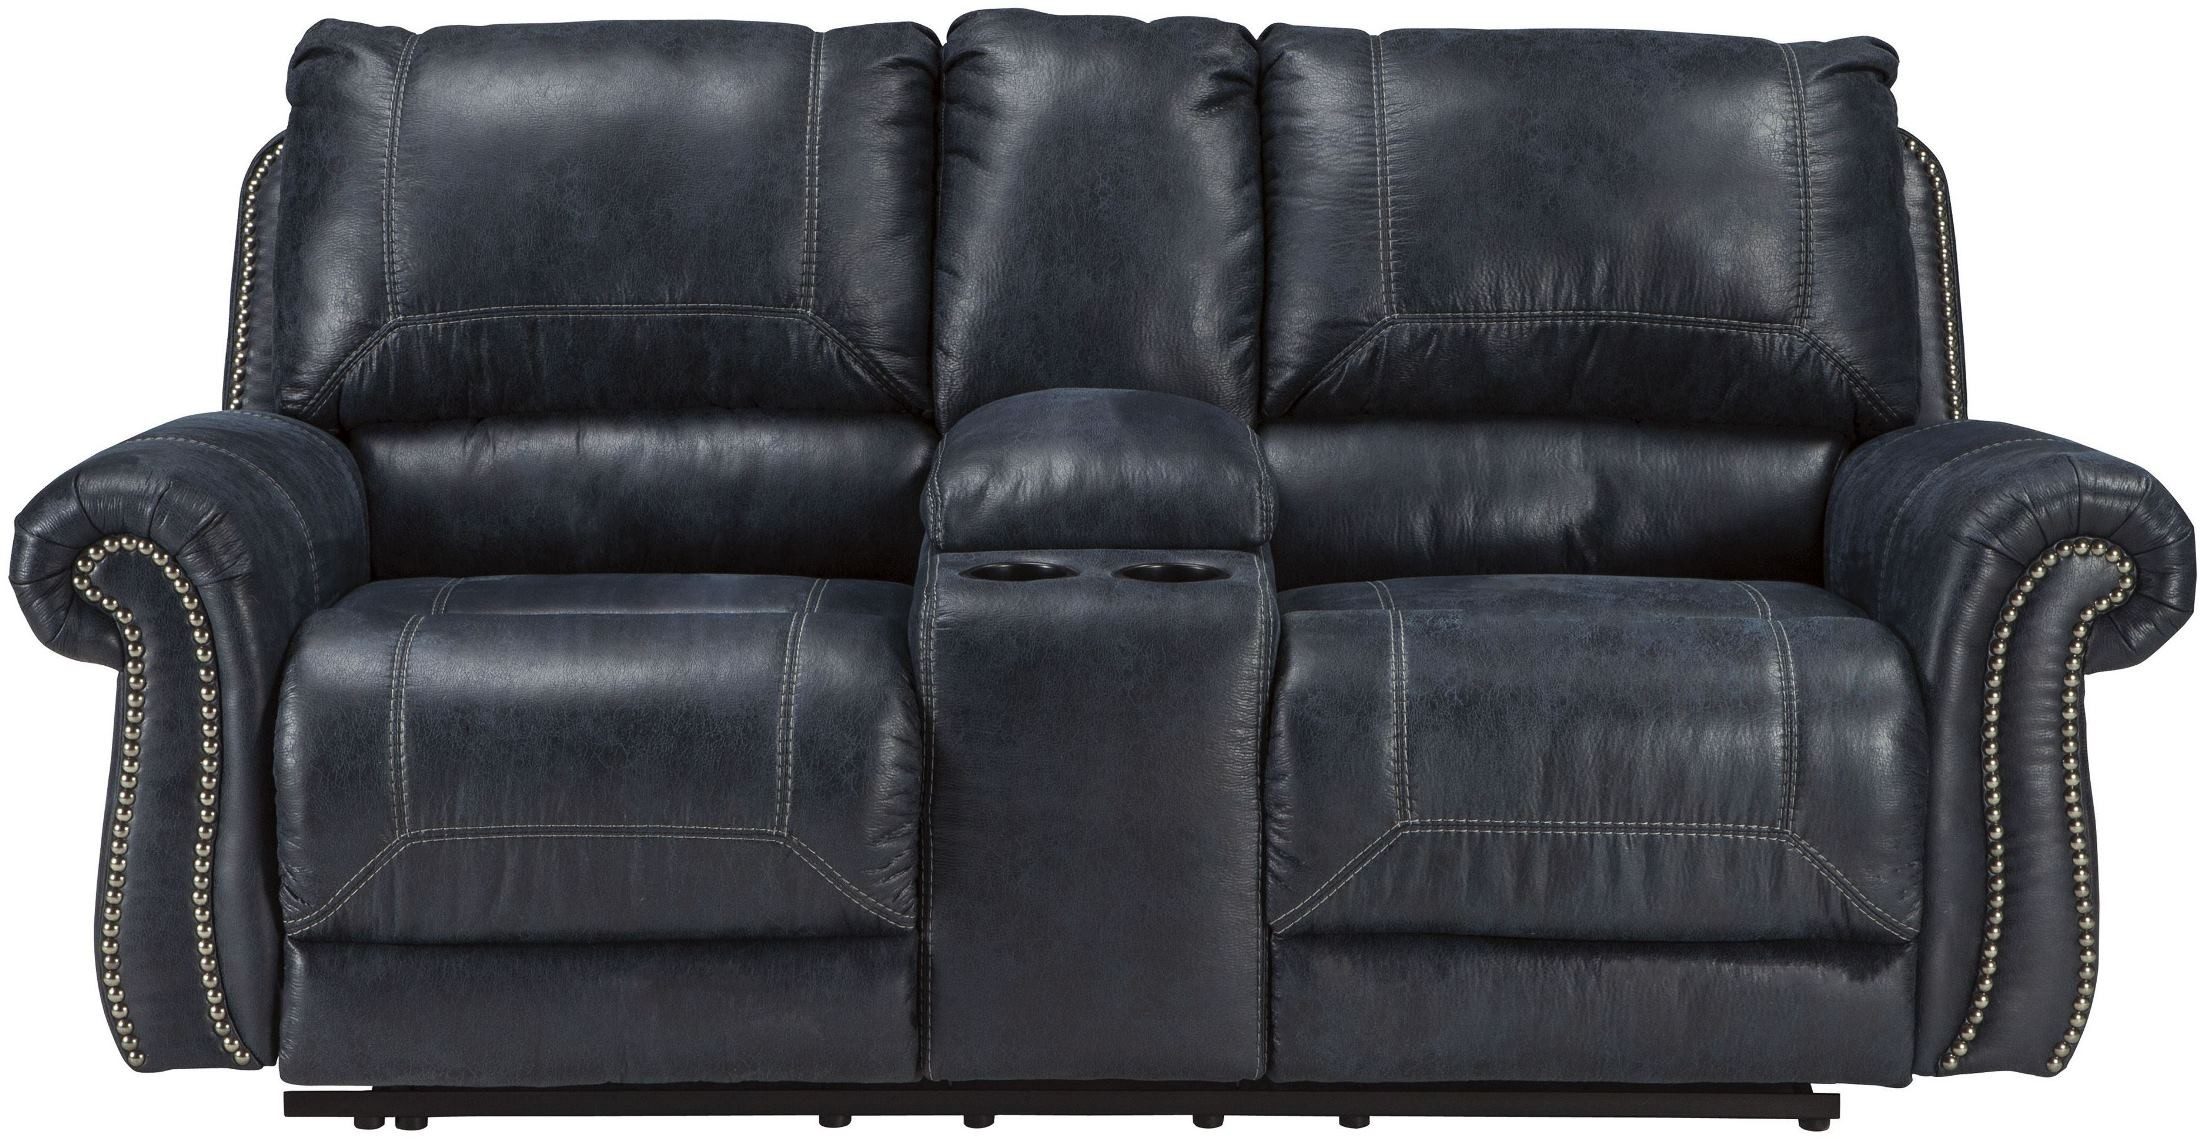 Milhaven Navy Double Power Reclining Console Loveseat From Ashley Coleman Furniture